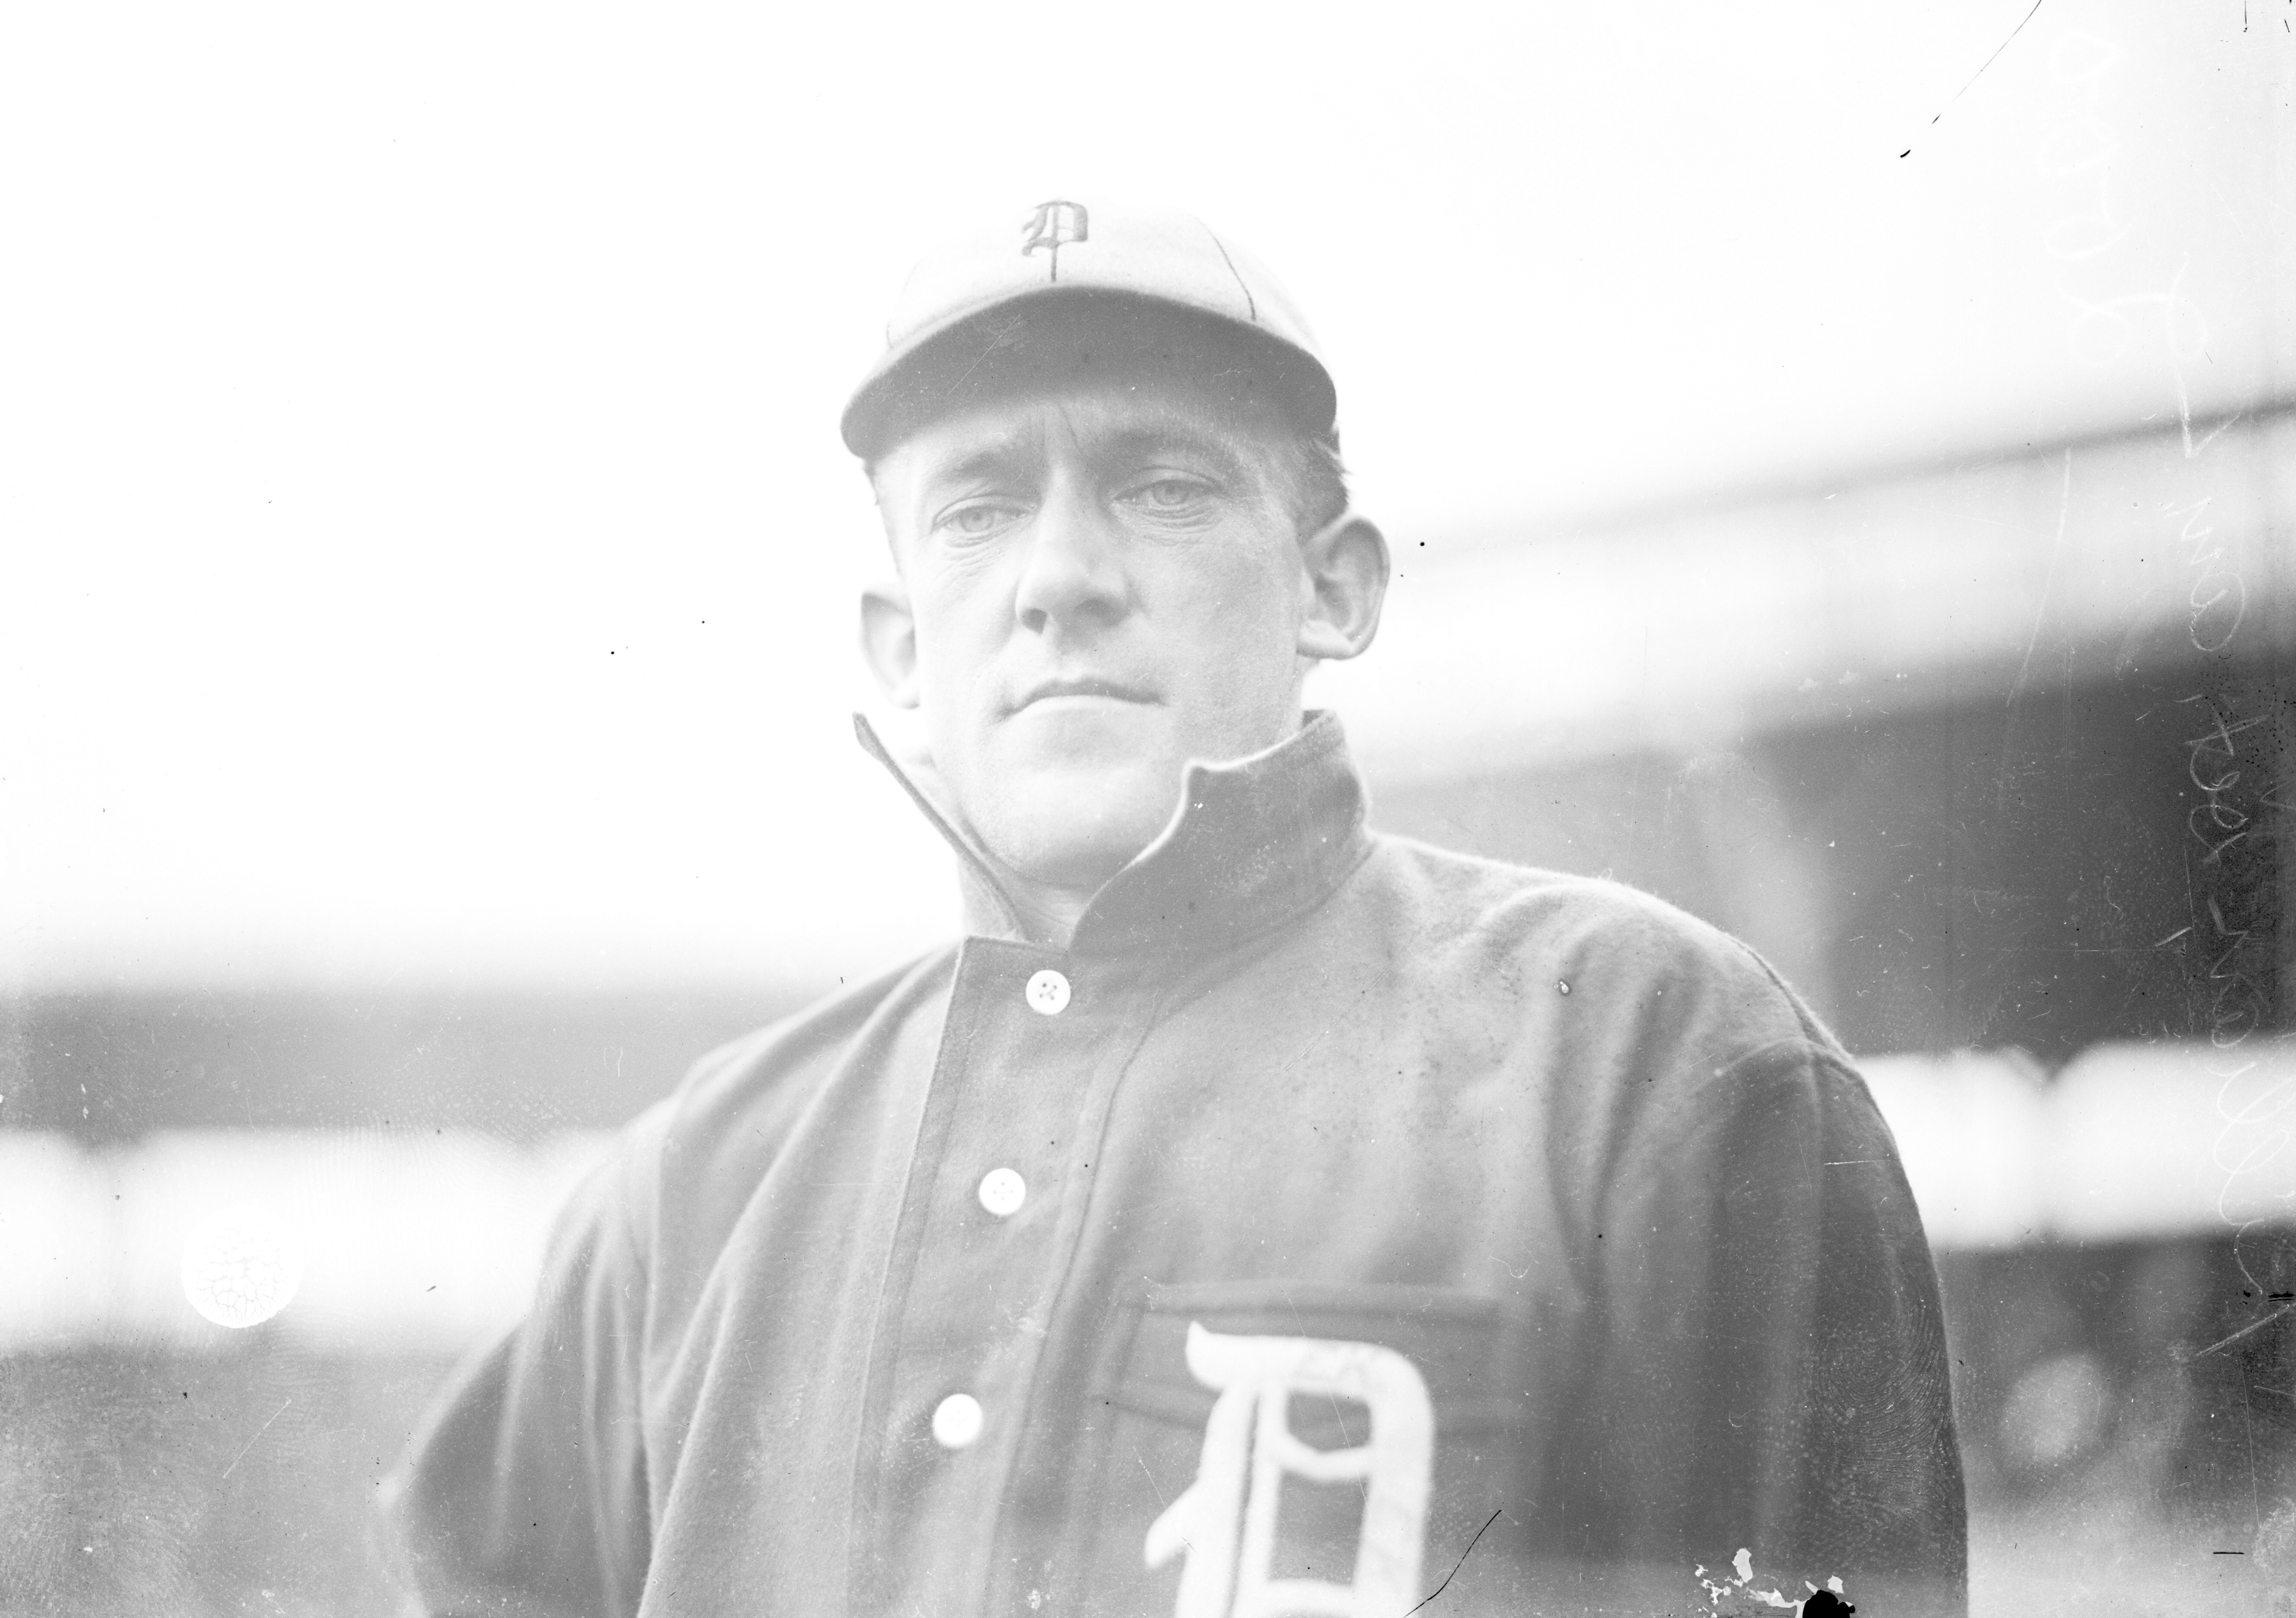 Ed Killian, Tiger Pitcher